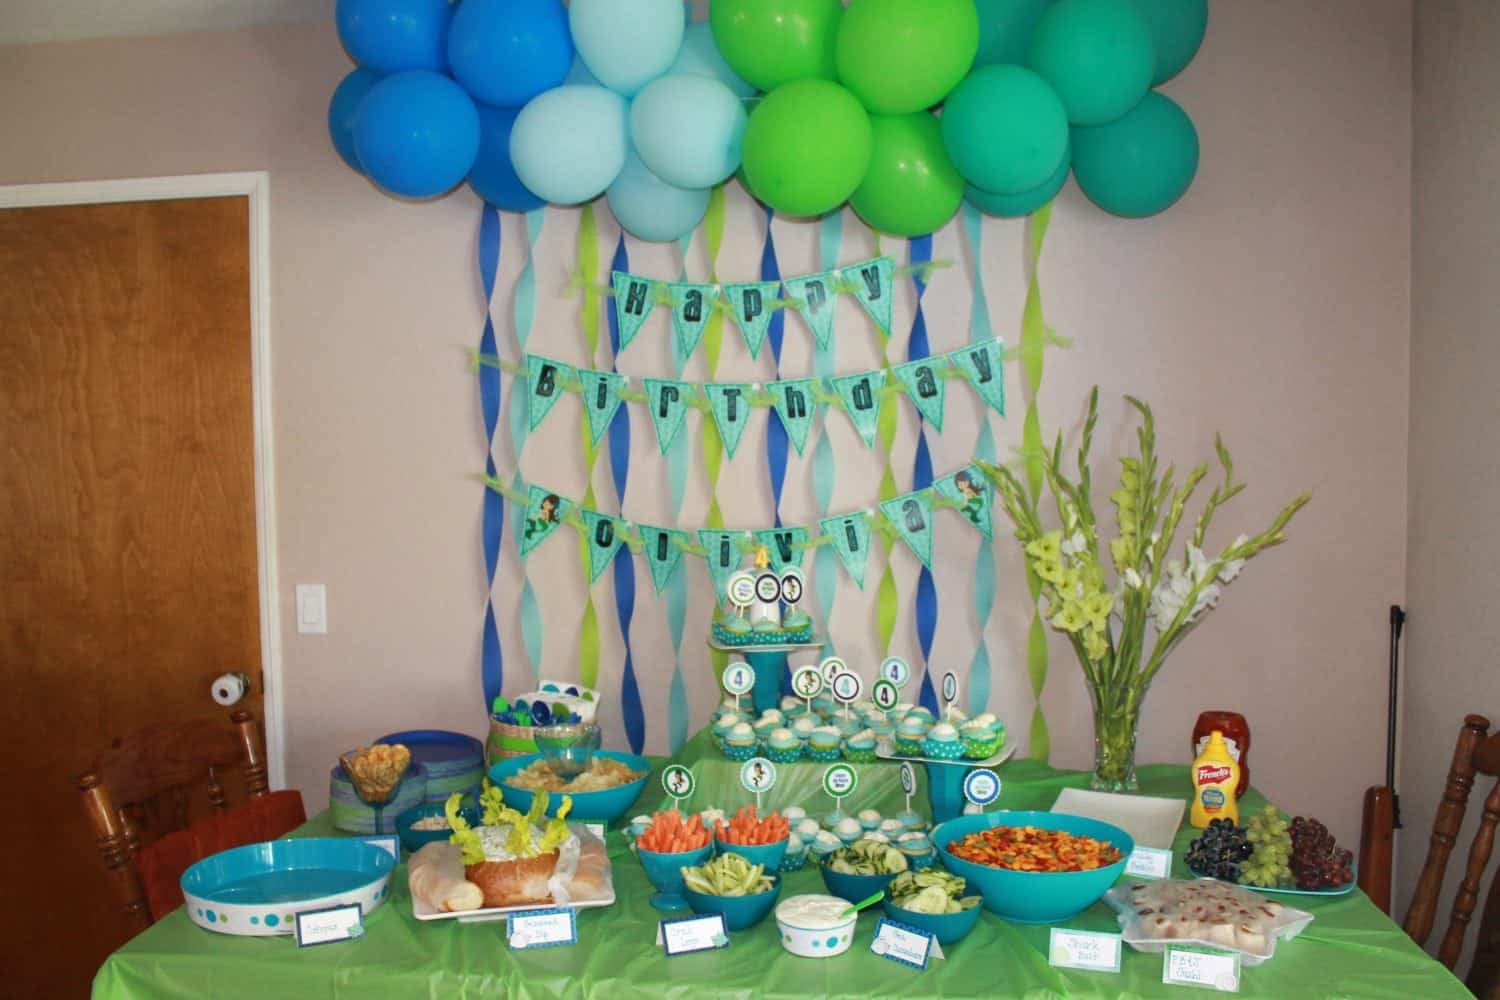 Cheap birthday party ideas at home image inspiration of for Home decorations for birthday party